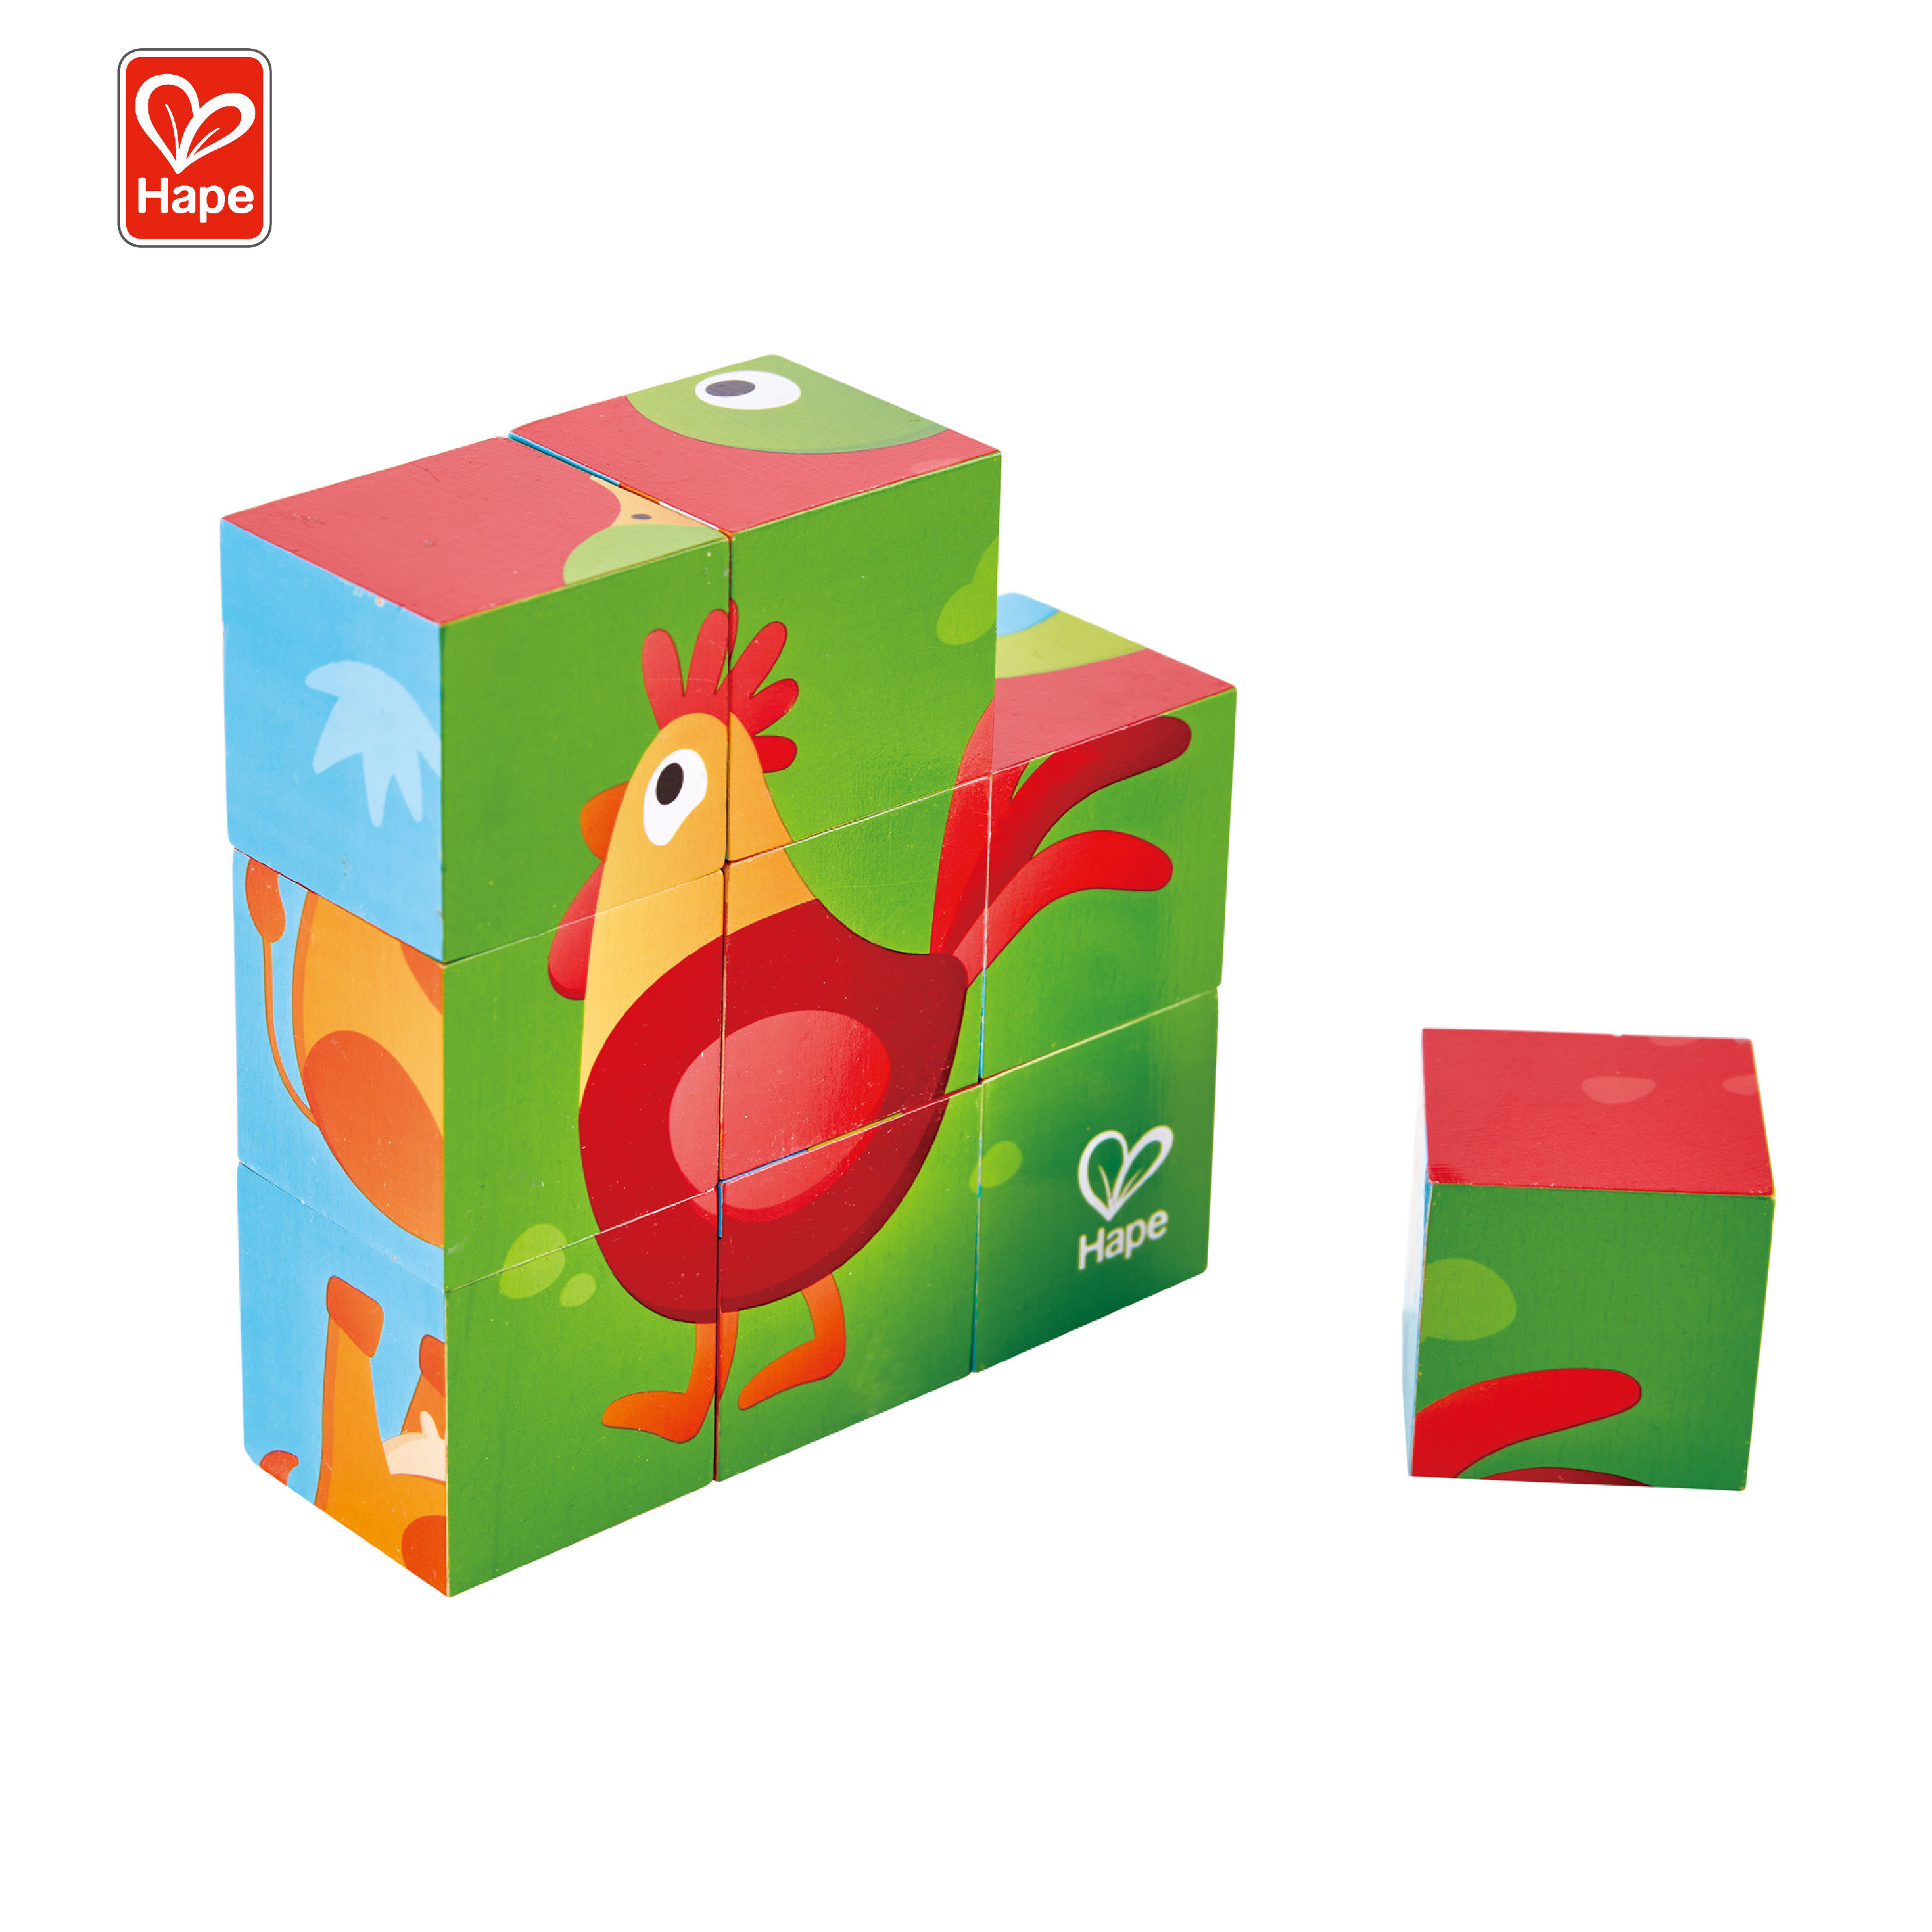 Hape Juguetes De Madera Animal Matching Farm Puzzle Baby Wooden 3D Cubes Puzzle For Kids